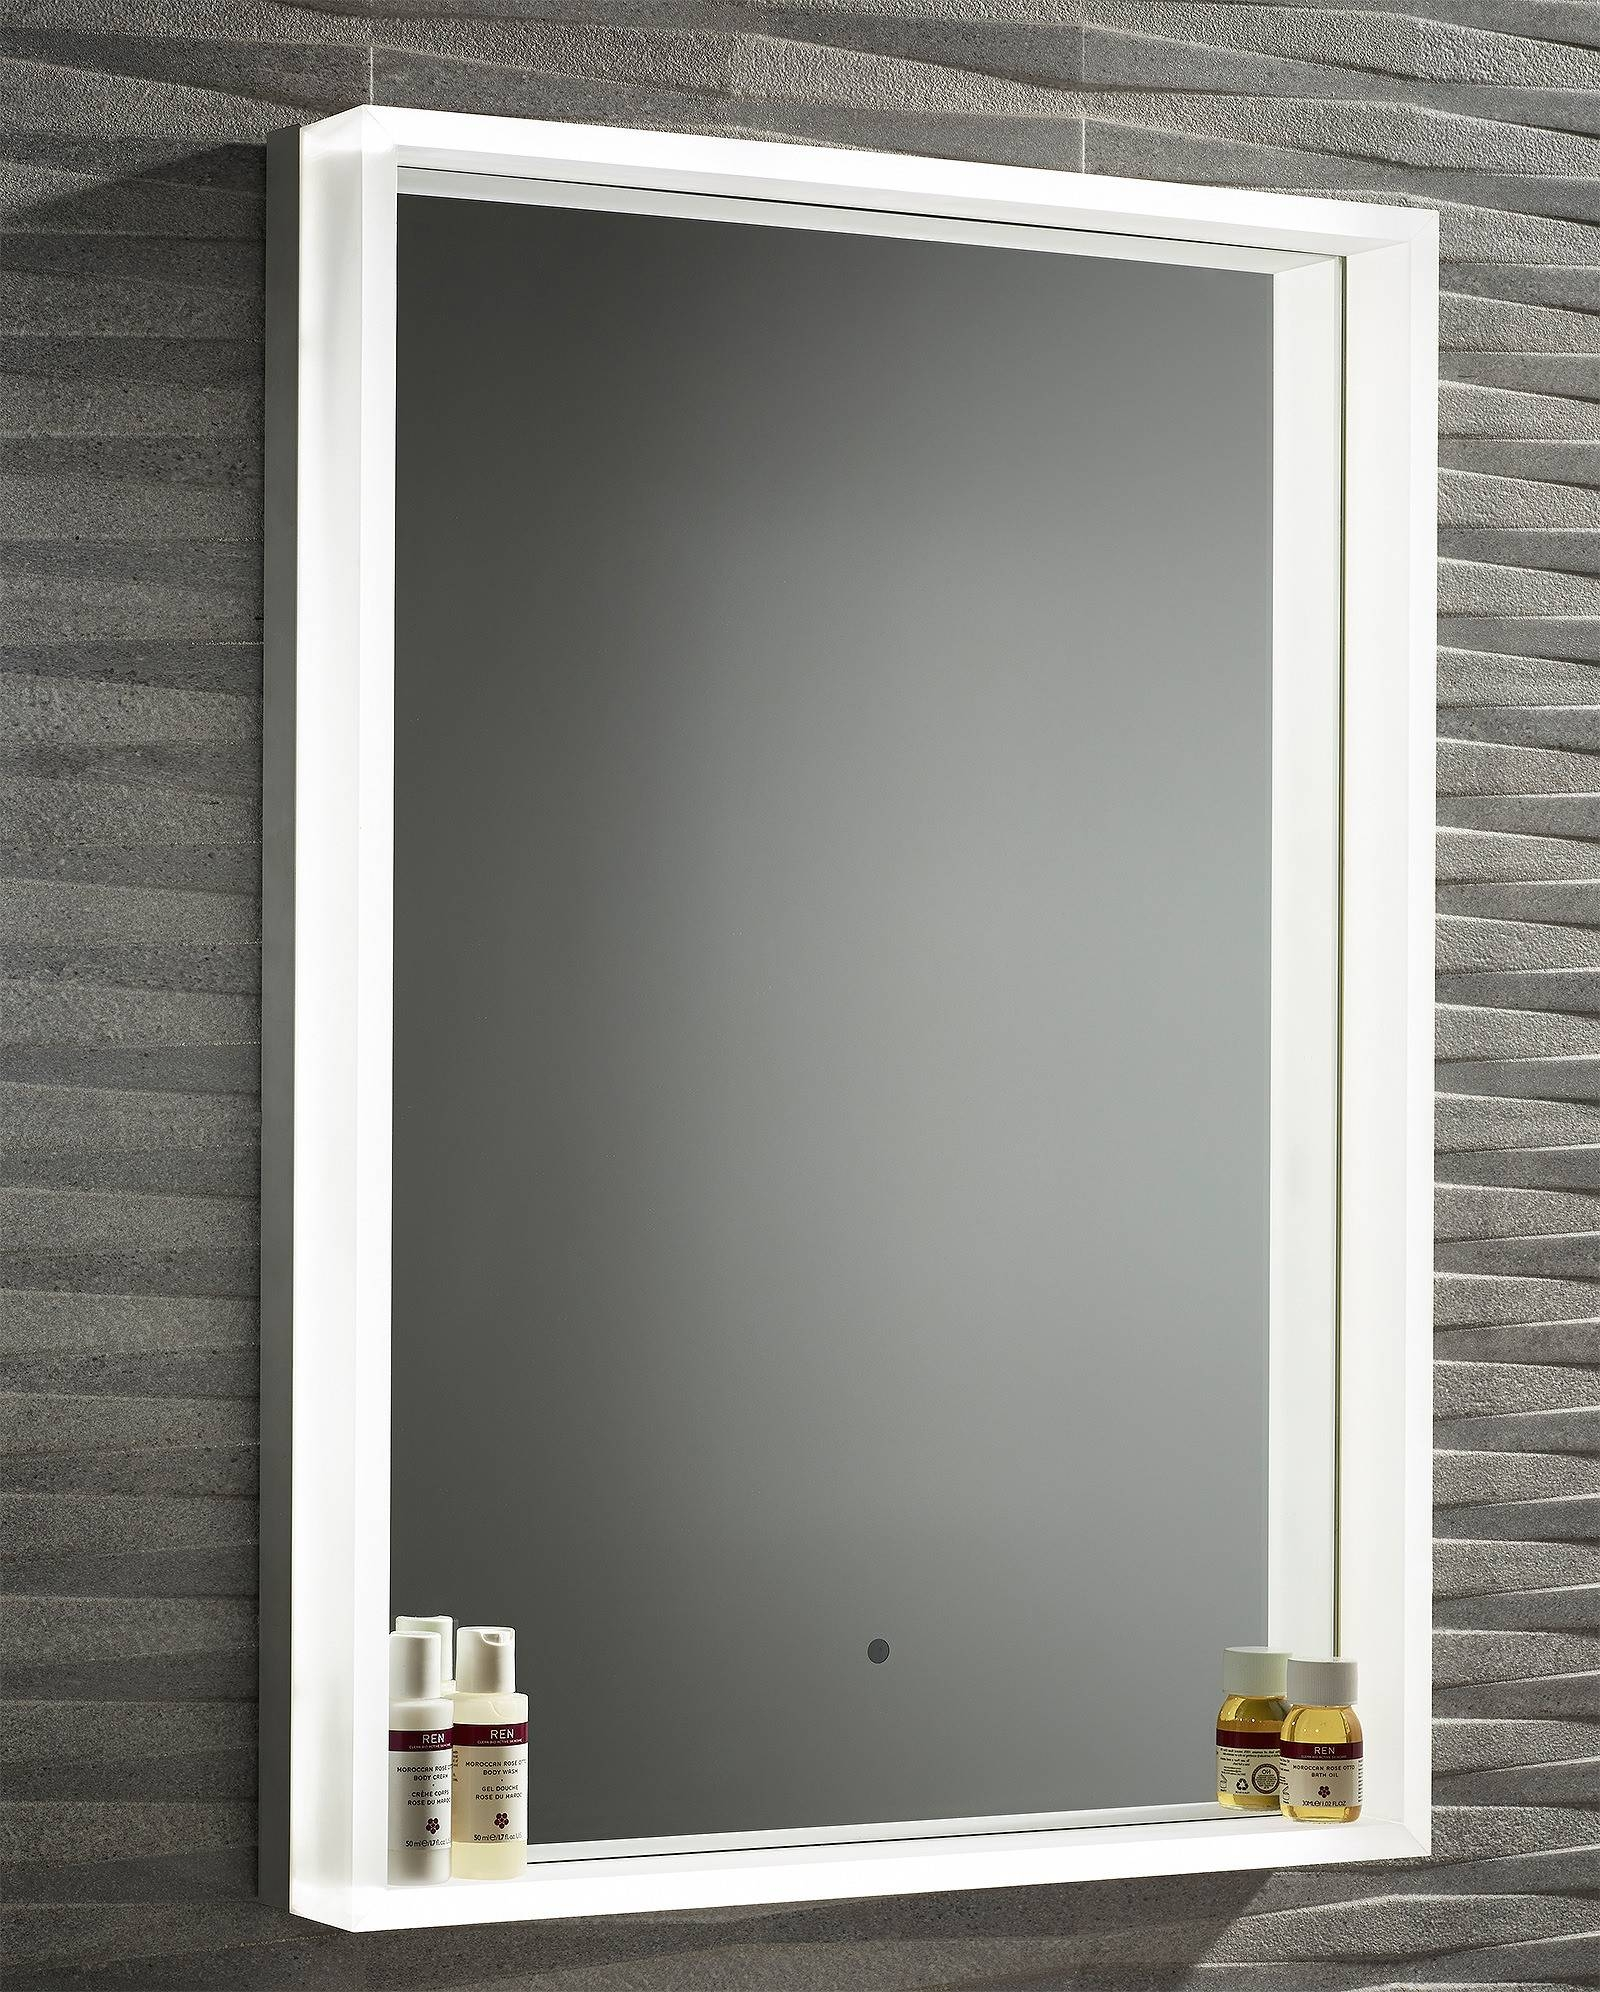 Roper Rhodes Aura Illuminated Framed Mirror 500 X 700Mm Chrome Inside Chrome Framed Mirrors (View 10 of 15)